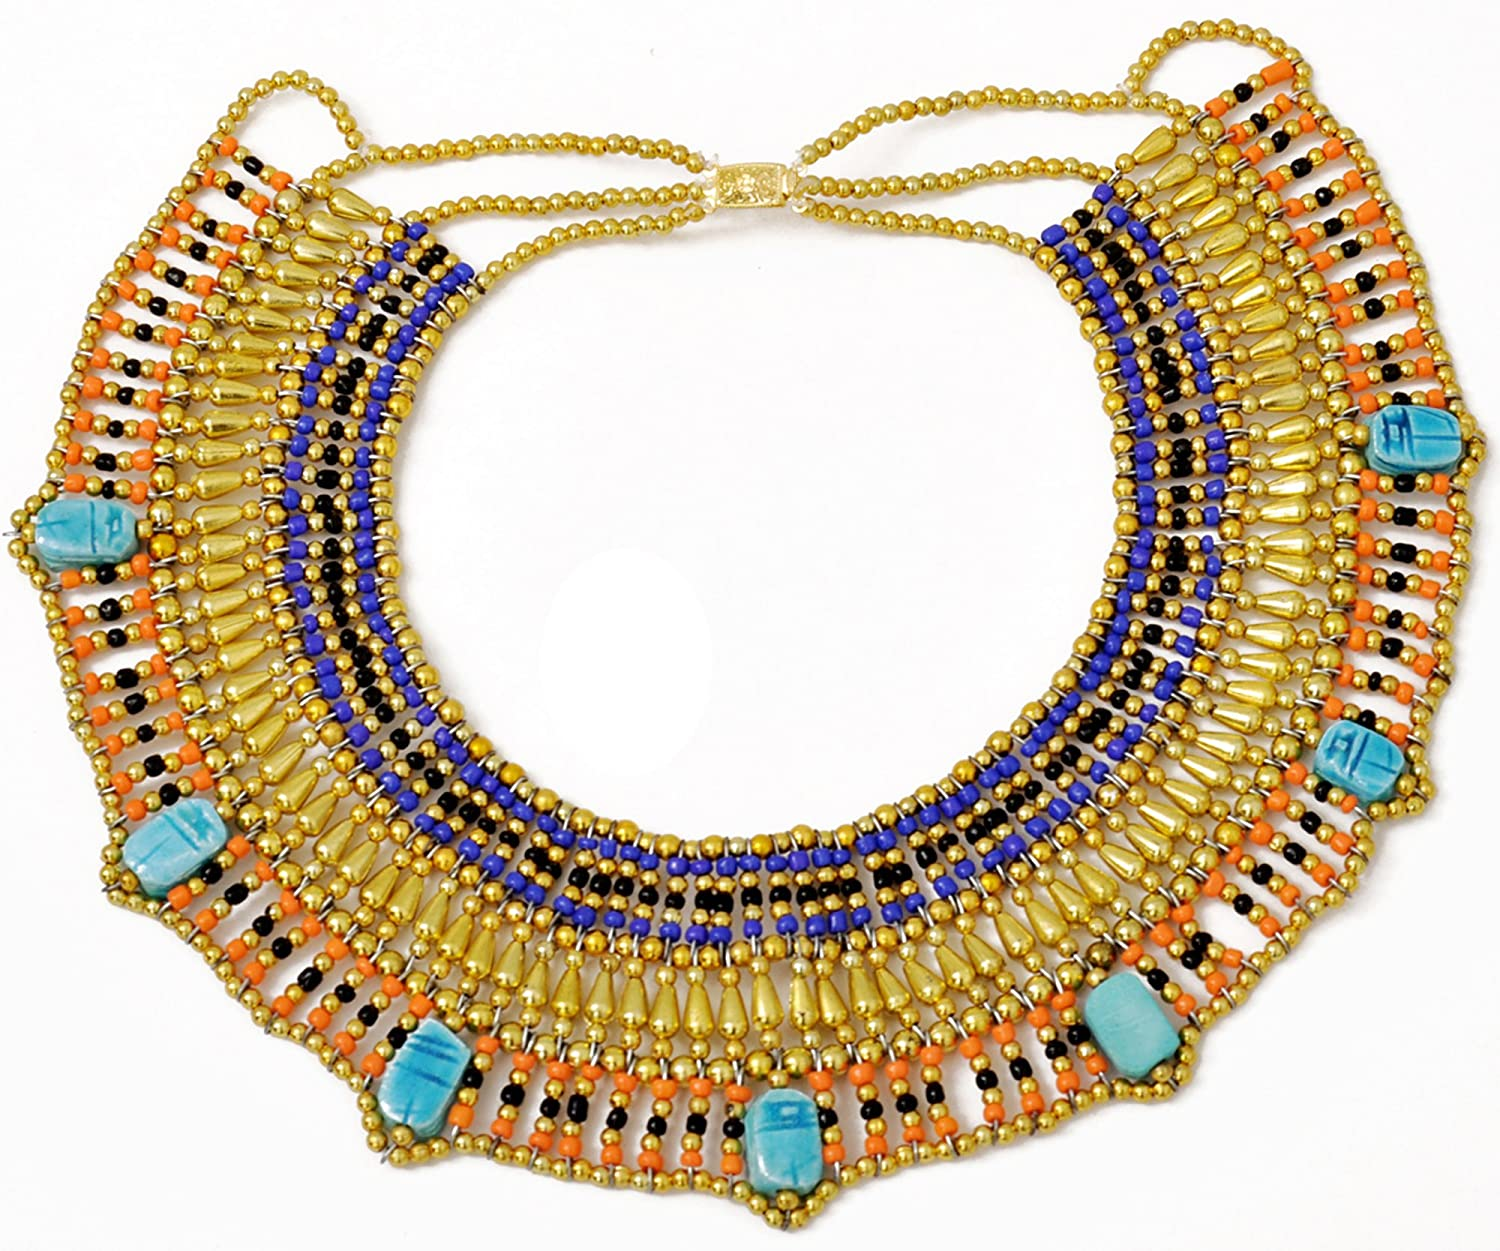 image collection jewellery jewelry details about s costume loading etc itm necklaces good is mixed